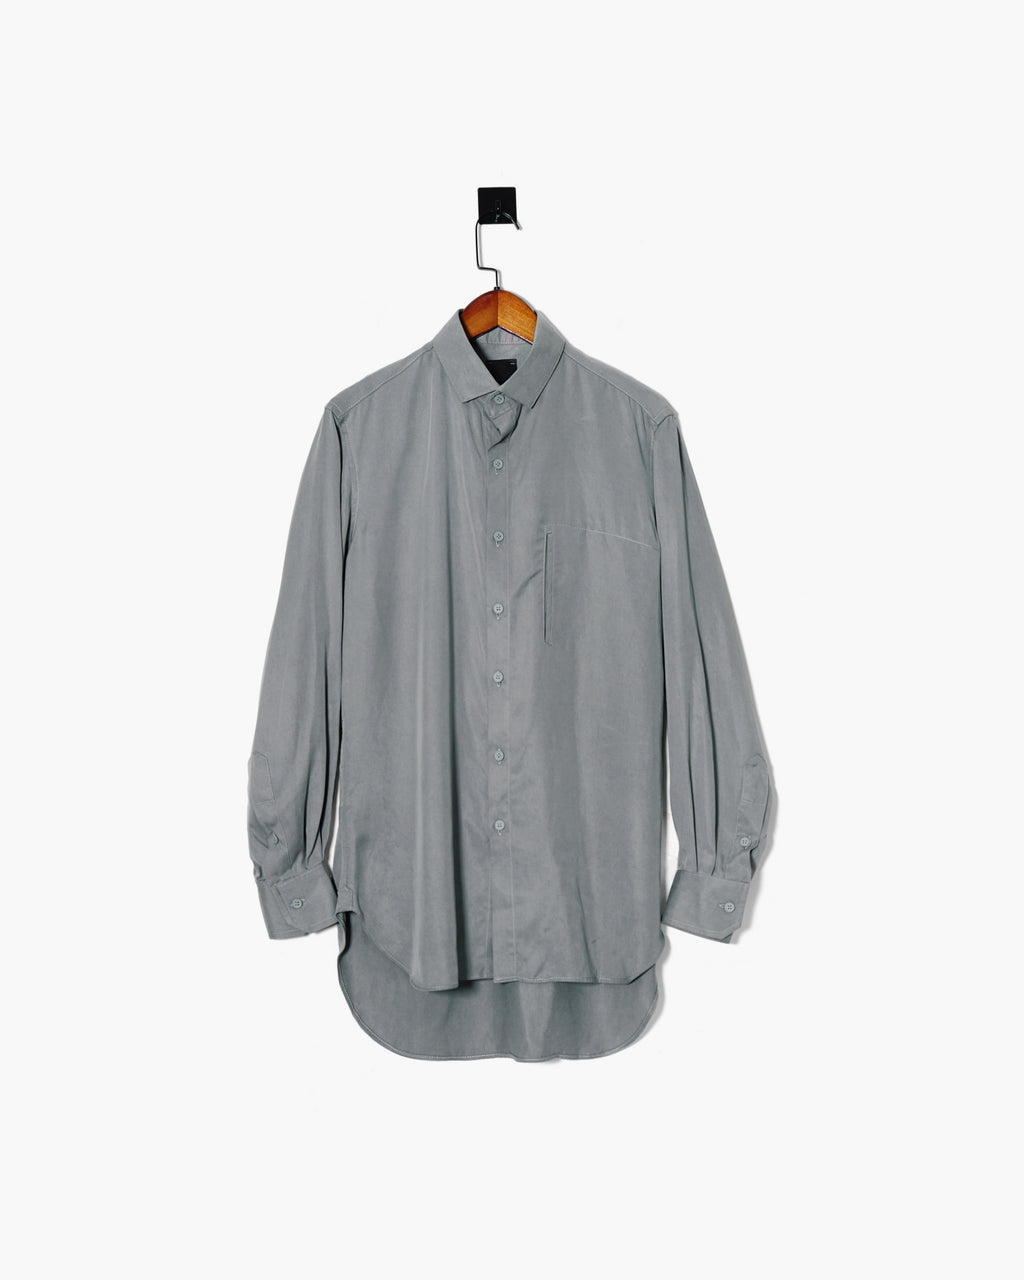 ROSEN Professional Shirt in Grey Sandwashed Silk Sz 1